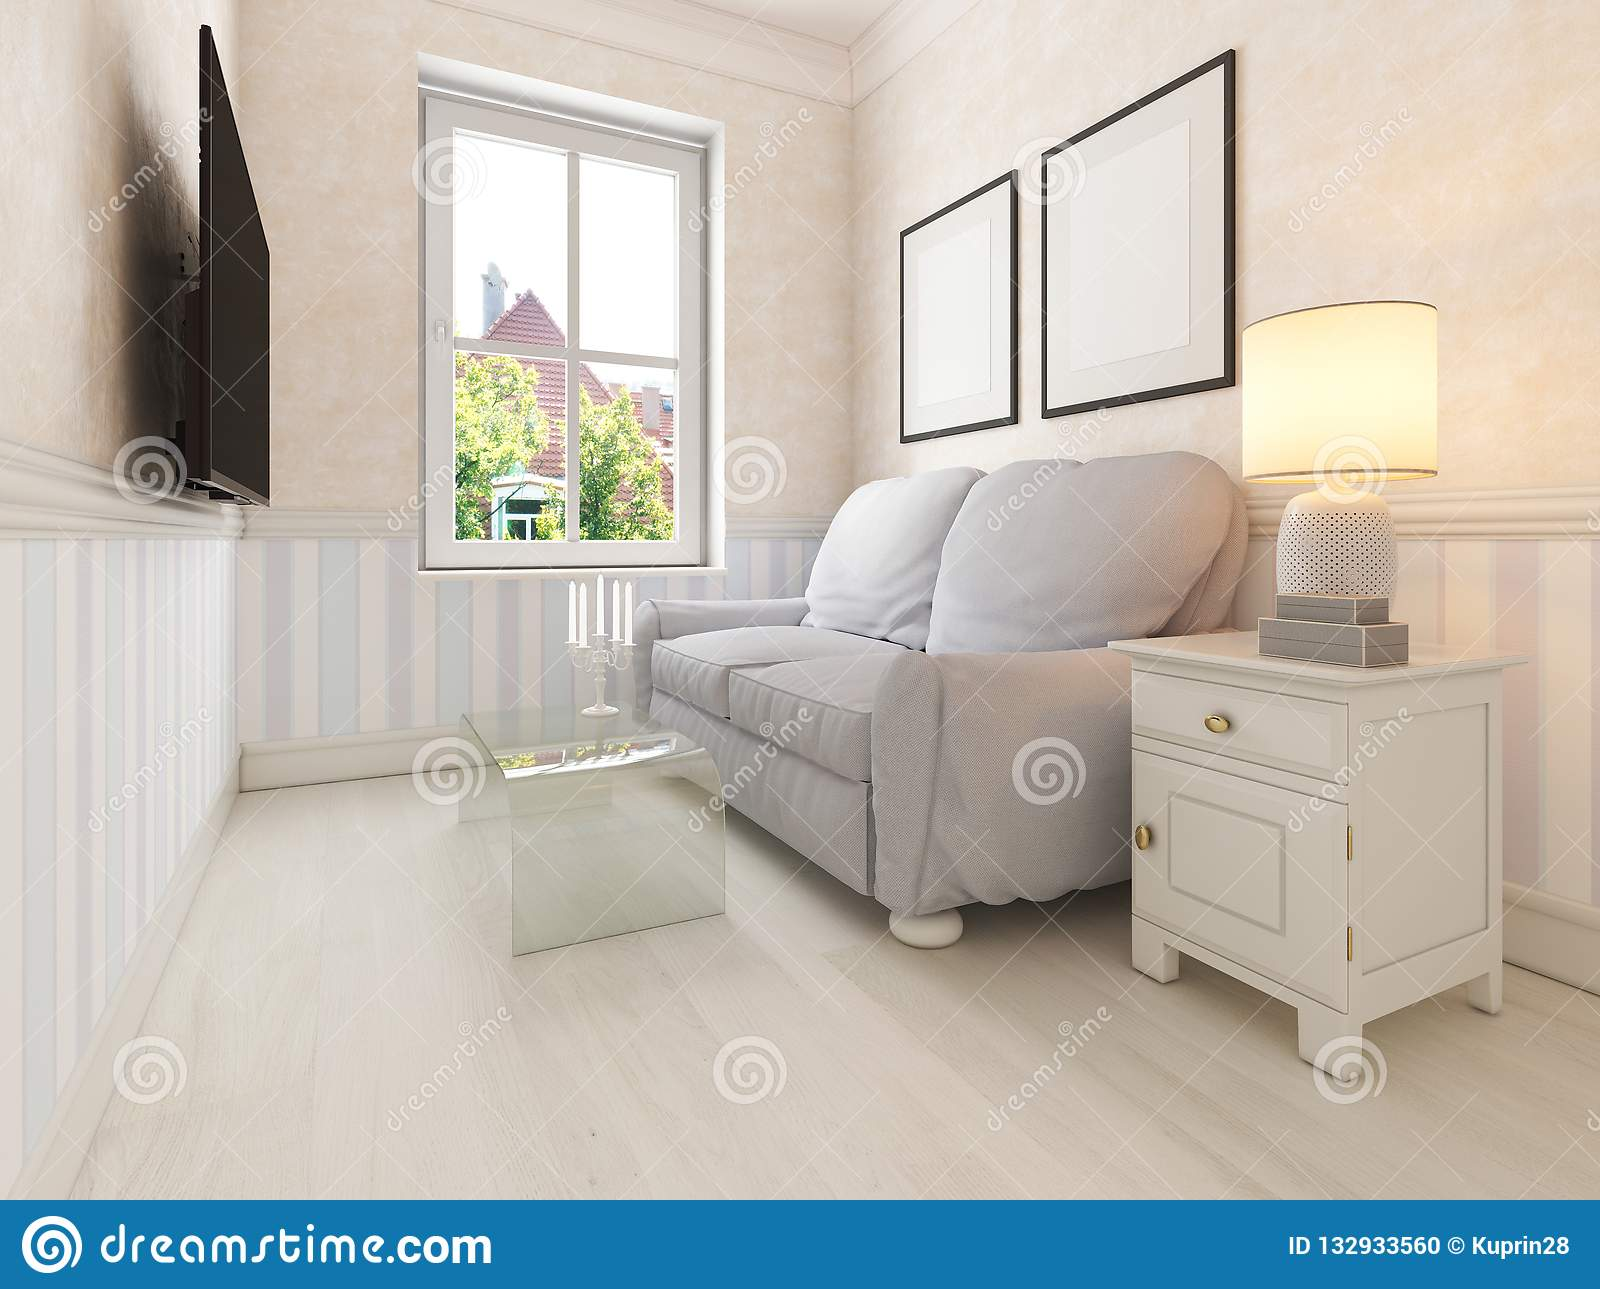 Small Living Room For Relaxing With A Sofa And Tv Stock